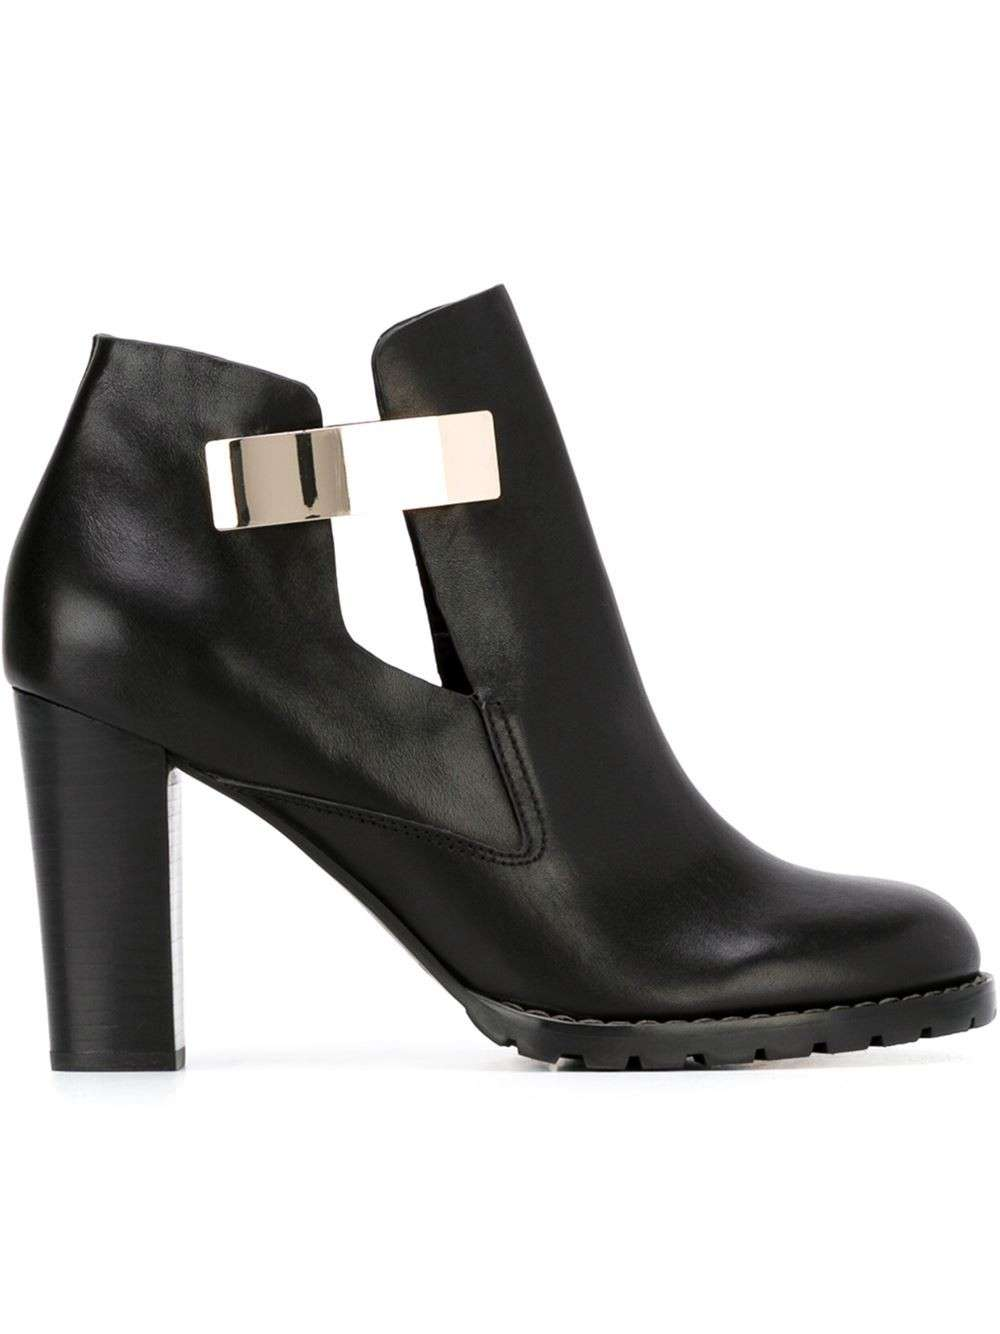 Ankle boots cut out See by Chloè